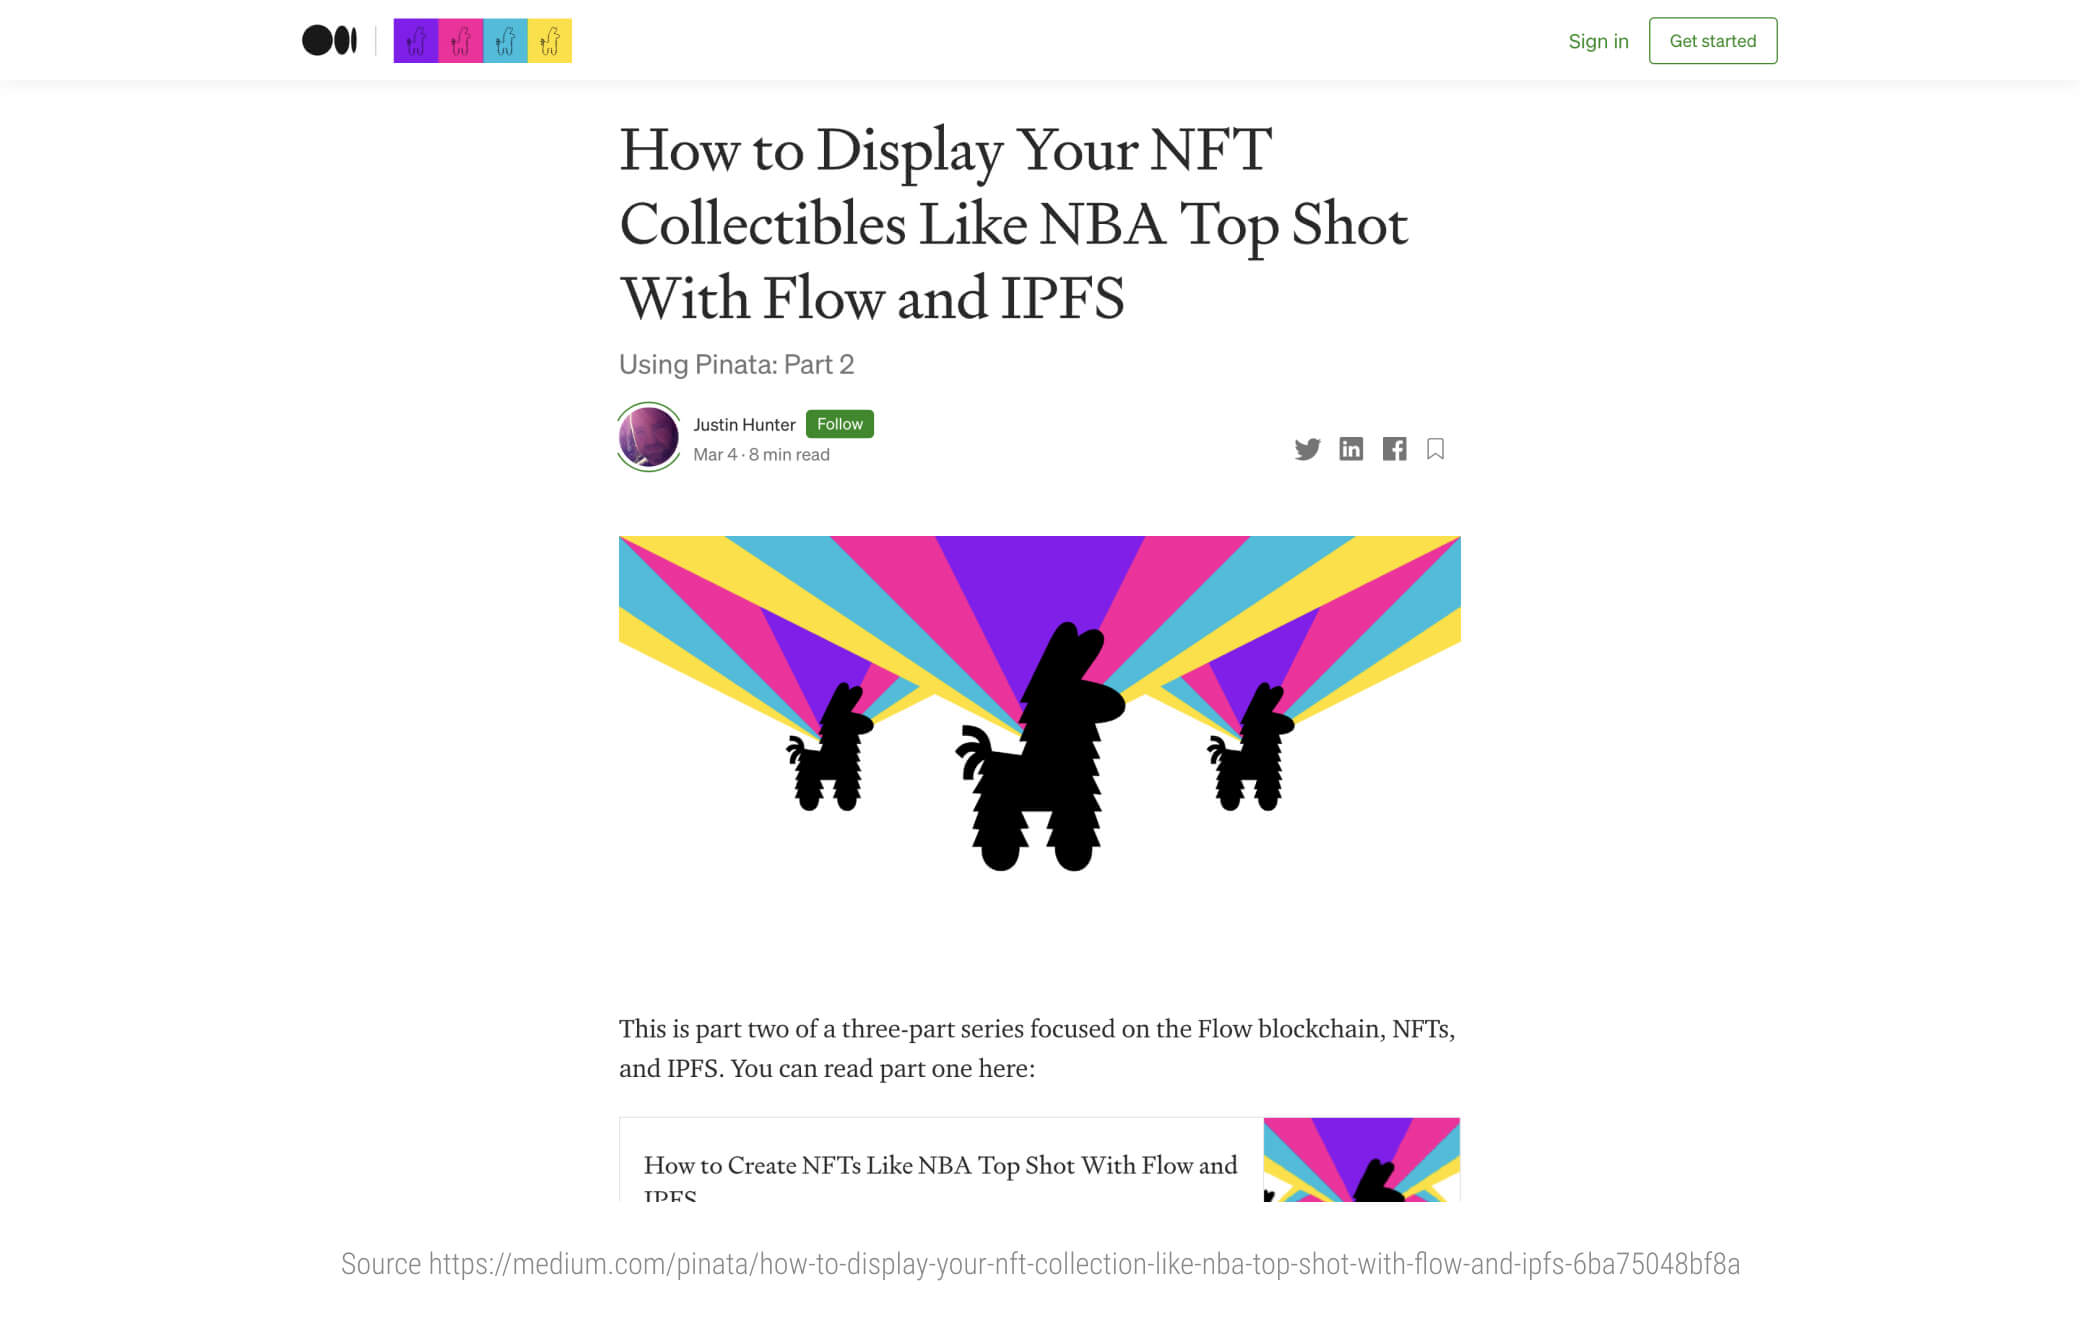 How-to-Display-Your-NFT-Collectibles-Like-NBA-Top-Shot-With-Flow-and-IPFS